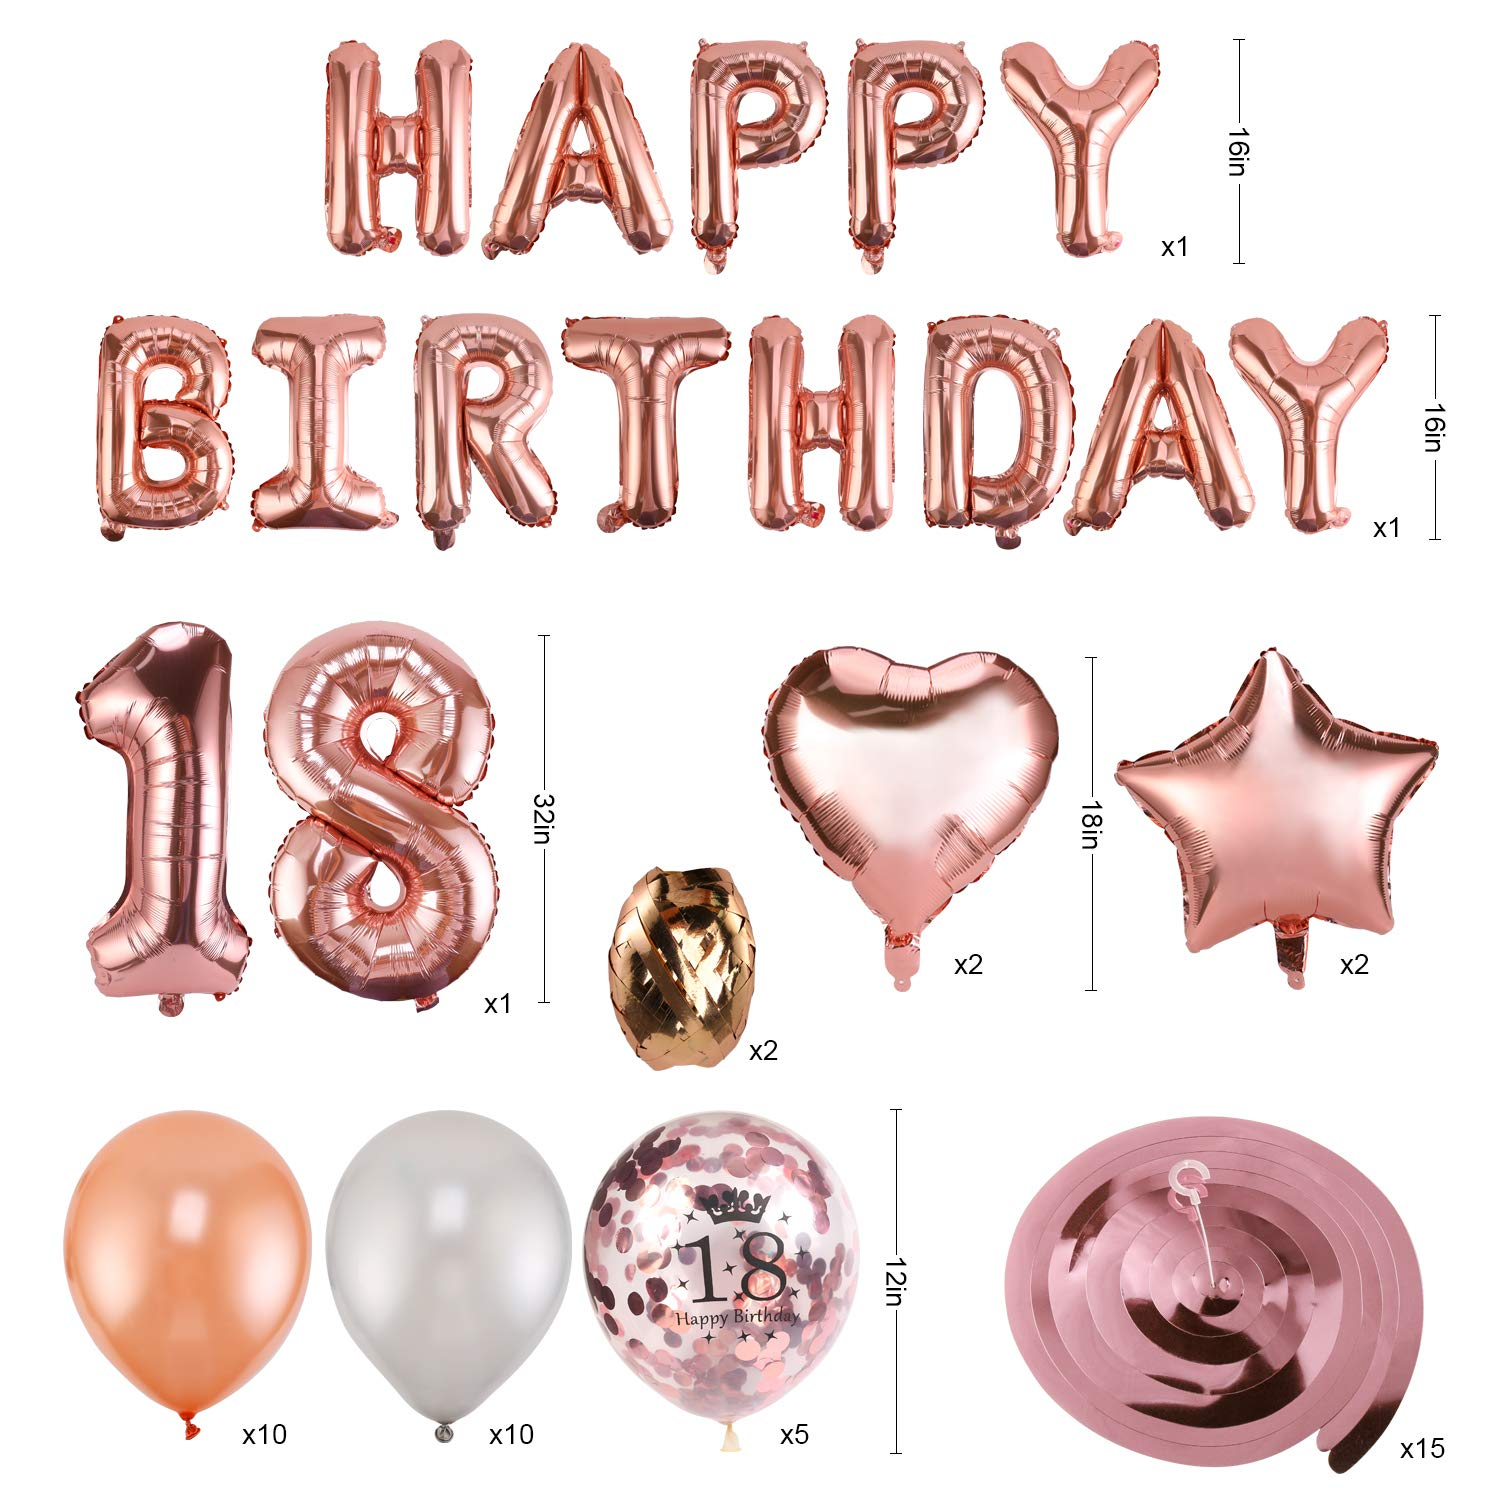 Konsait 59pack Rose Gold 18th Birthday Decorations for Women Girls 18 Birthday Party Supplies Happy Birthday Balloon Banner Rose Gold Hanging Swirls Confetti Latex Balloons Star Foil Balloons